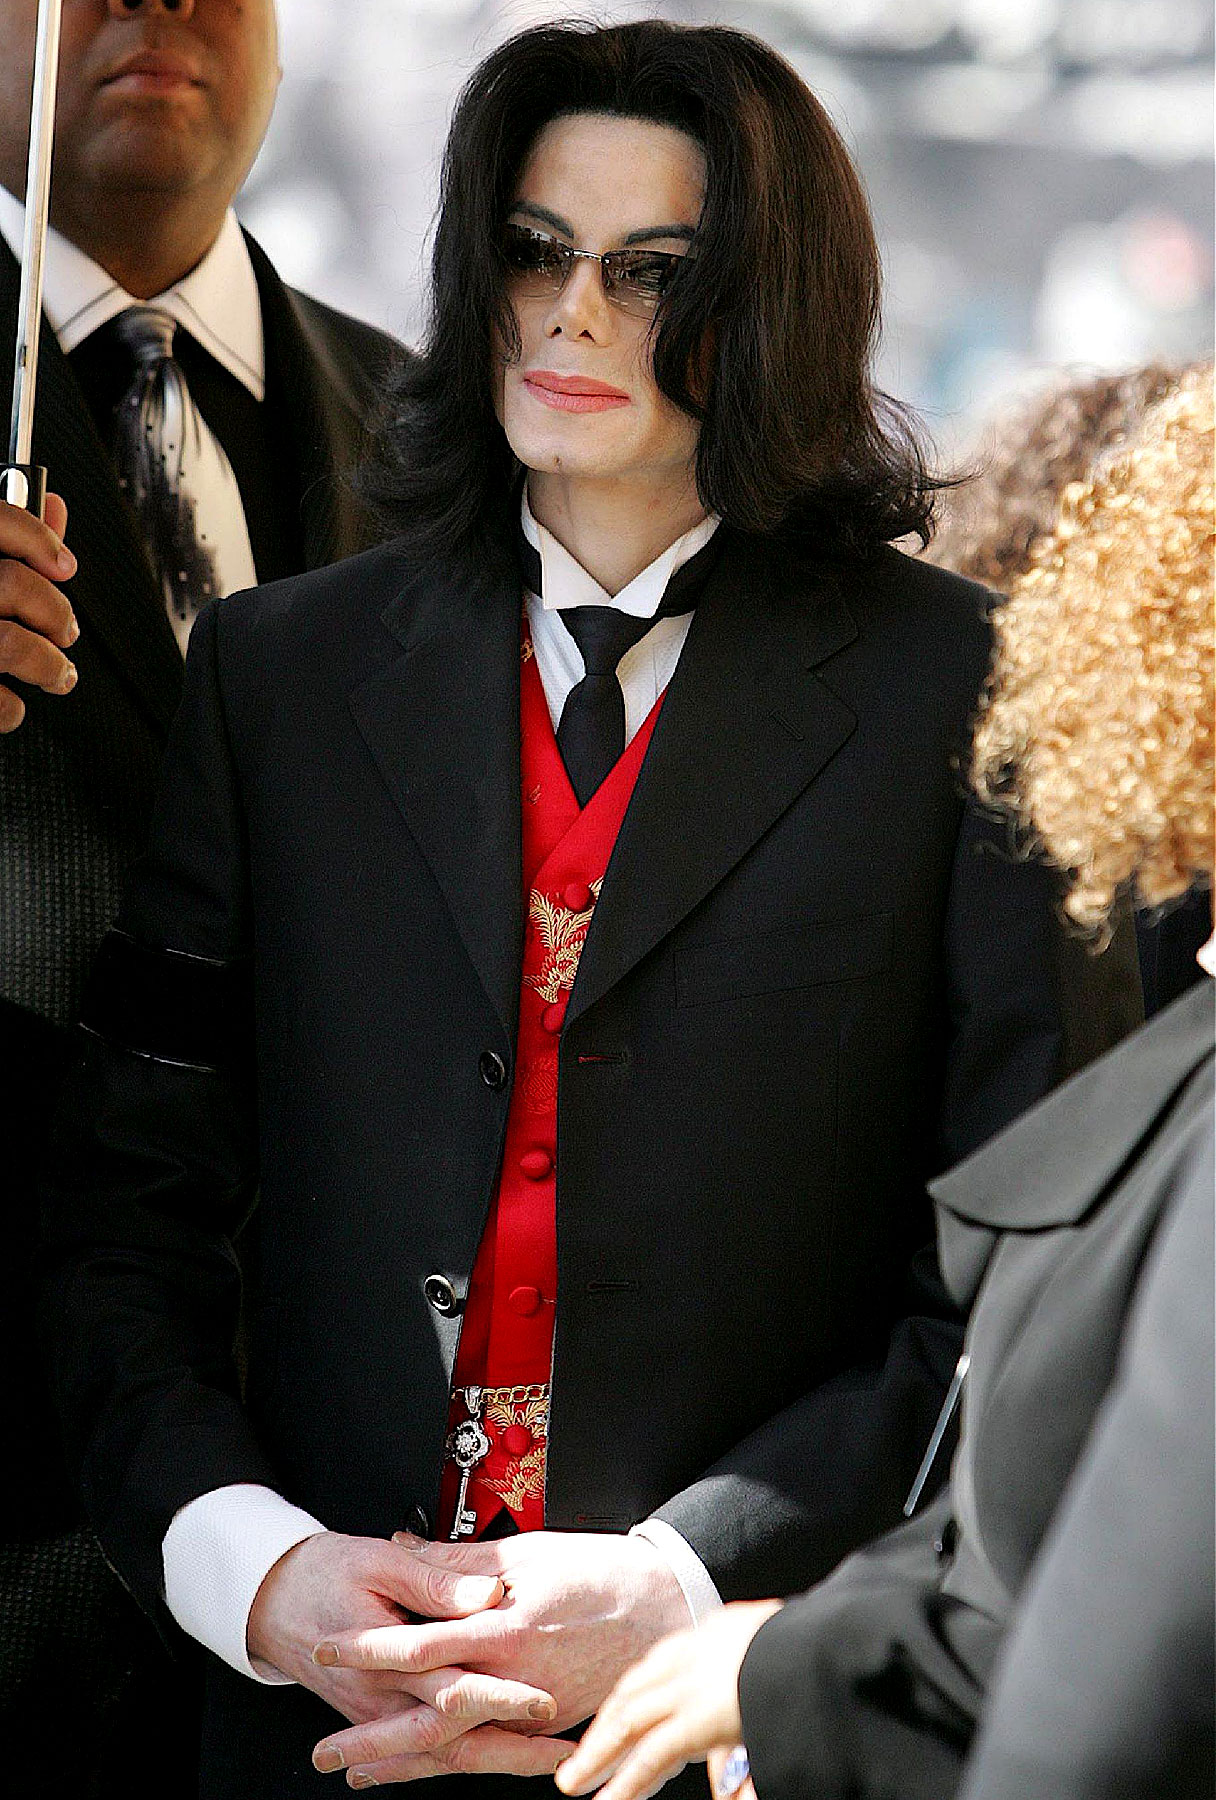 Coroner Releases Findings on Michael Jackson Death